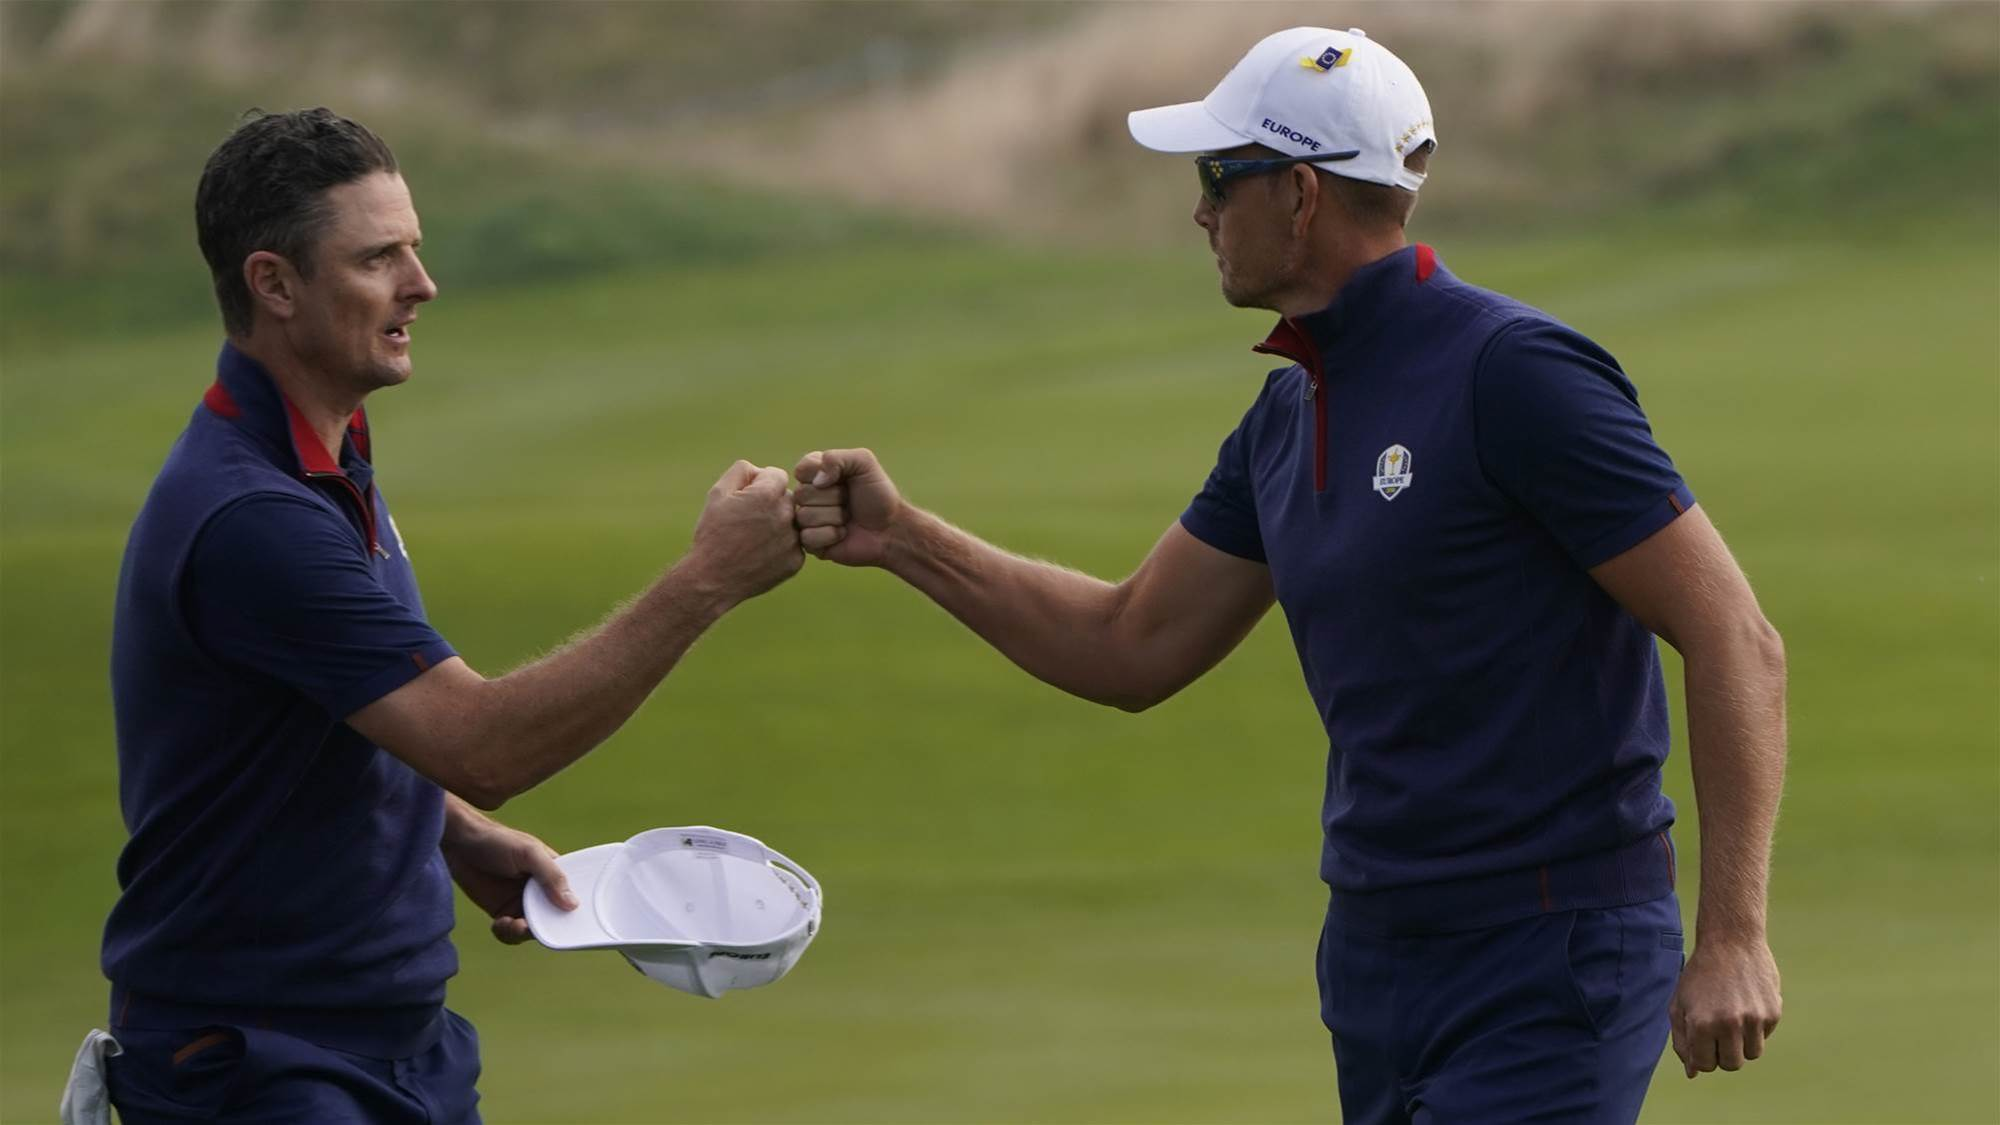 Stenson to reunite with Rose at Indonesian Masters